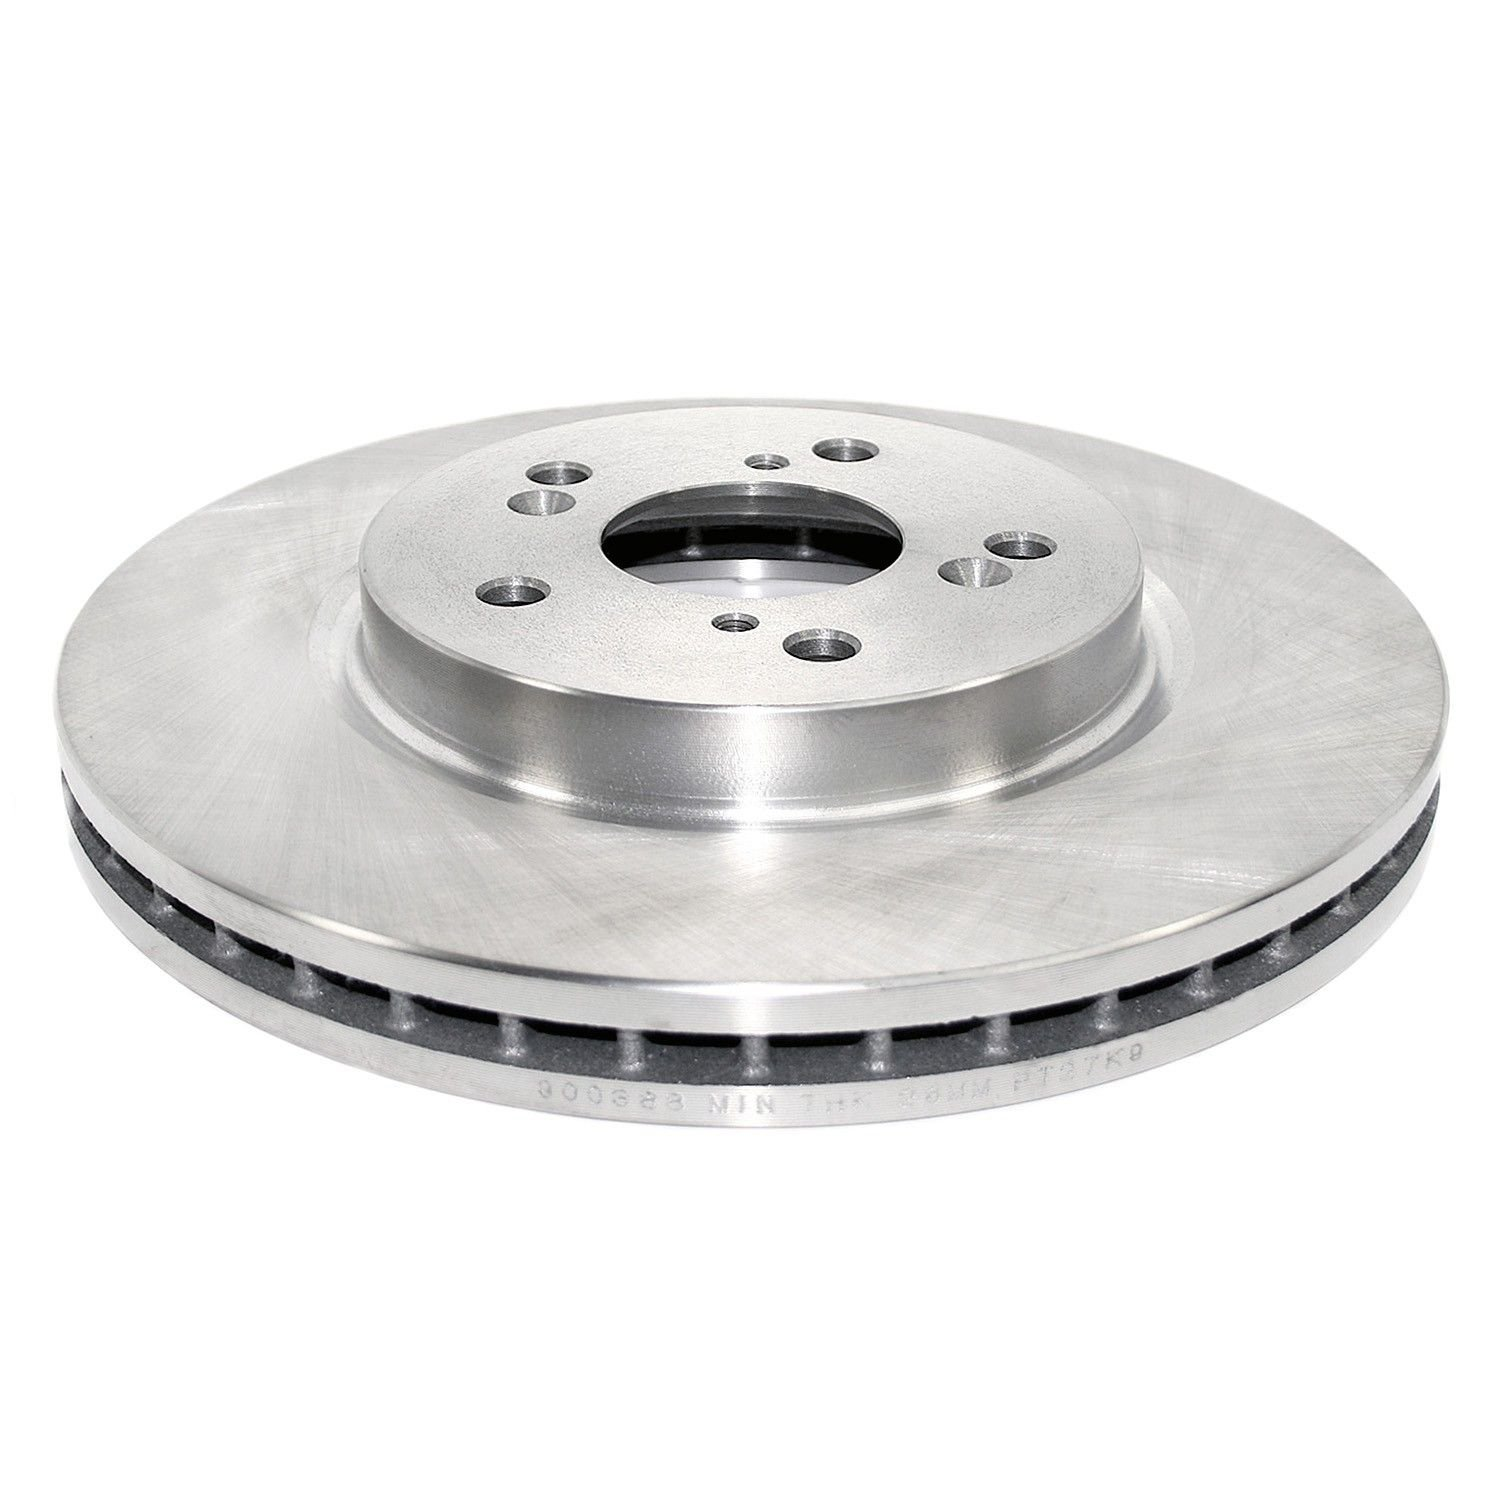 Acura RDX Disc Brake Rotor Replacement Beck Arnley Bosch Centric - Acura rdx brakes